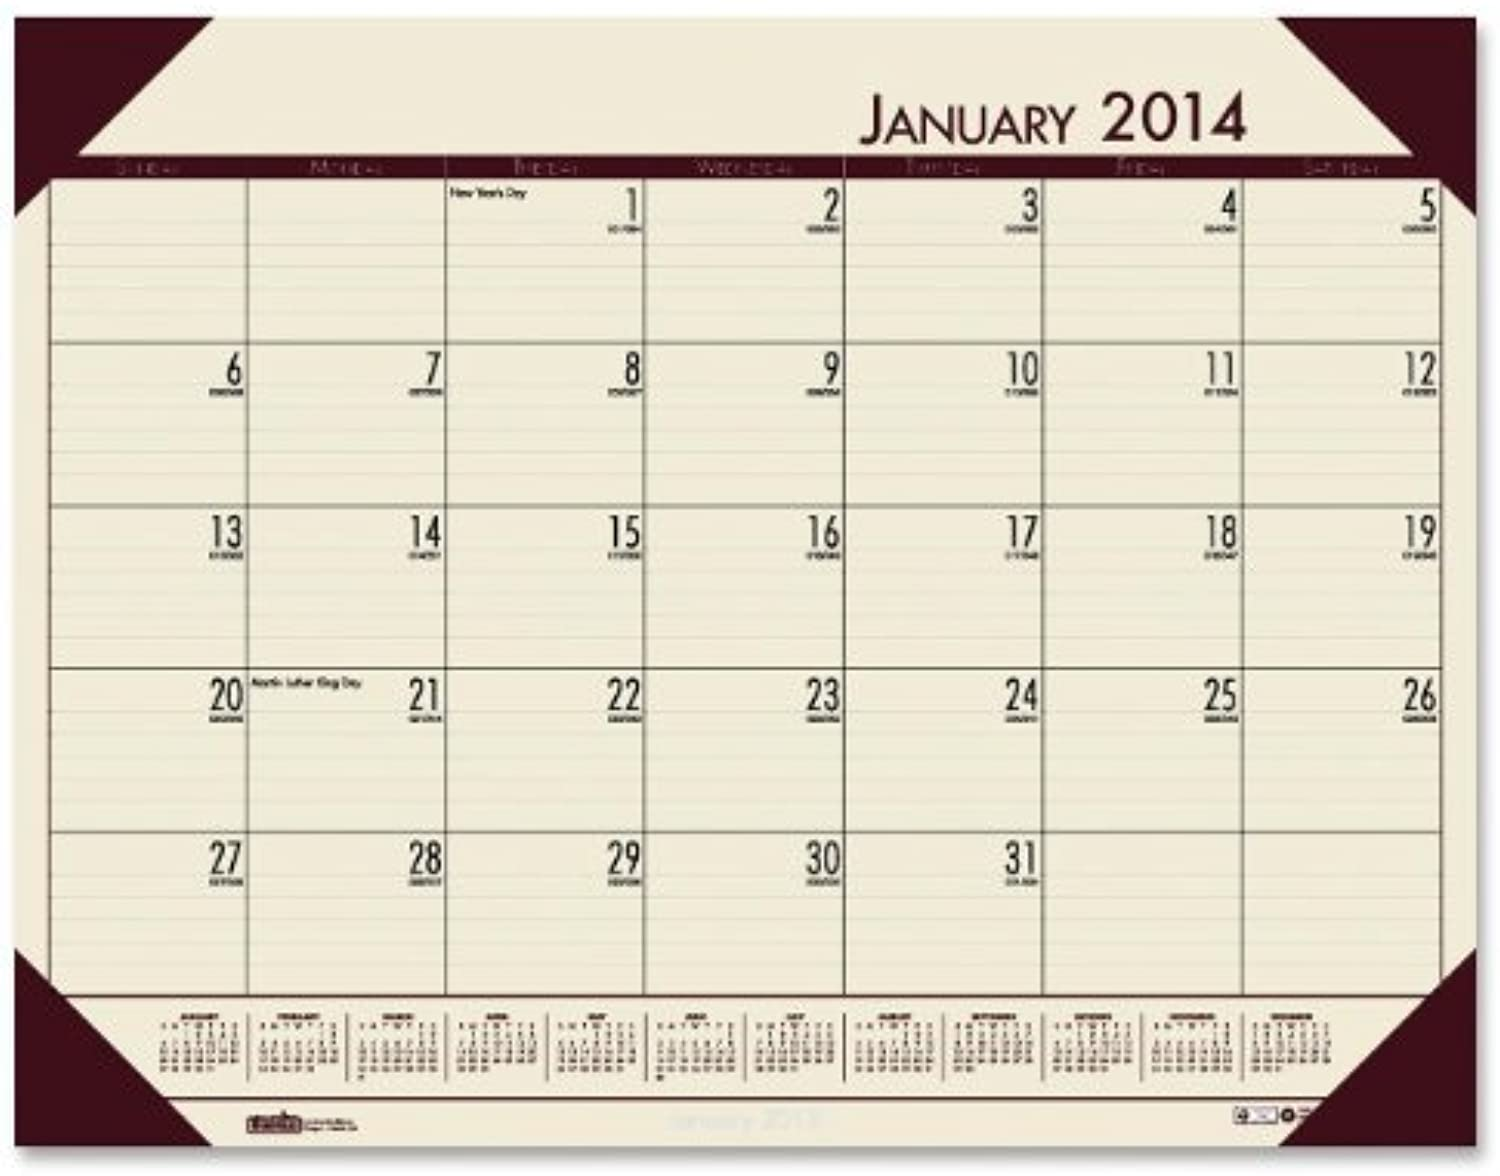 House of Doolittle EcoTone Tan Desk Pad Calendar 22 x 17 Inches 12 Months January 2014 to December 2014 Recycled (HOD12443) by House of Doolittle B0141N6SBG | Modern